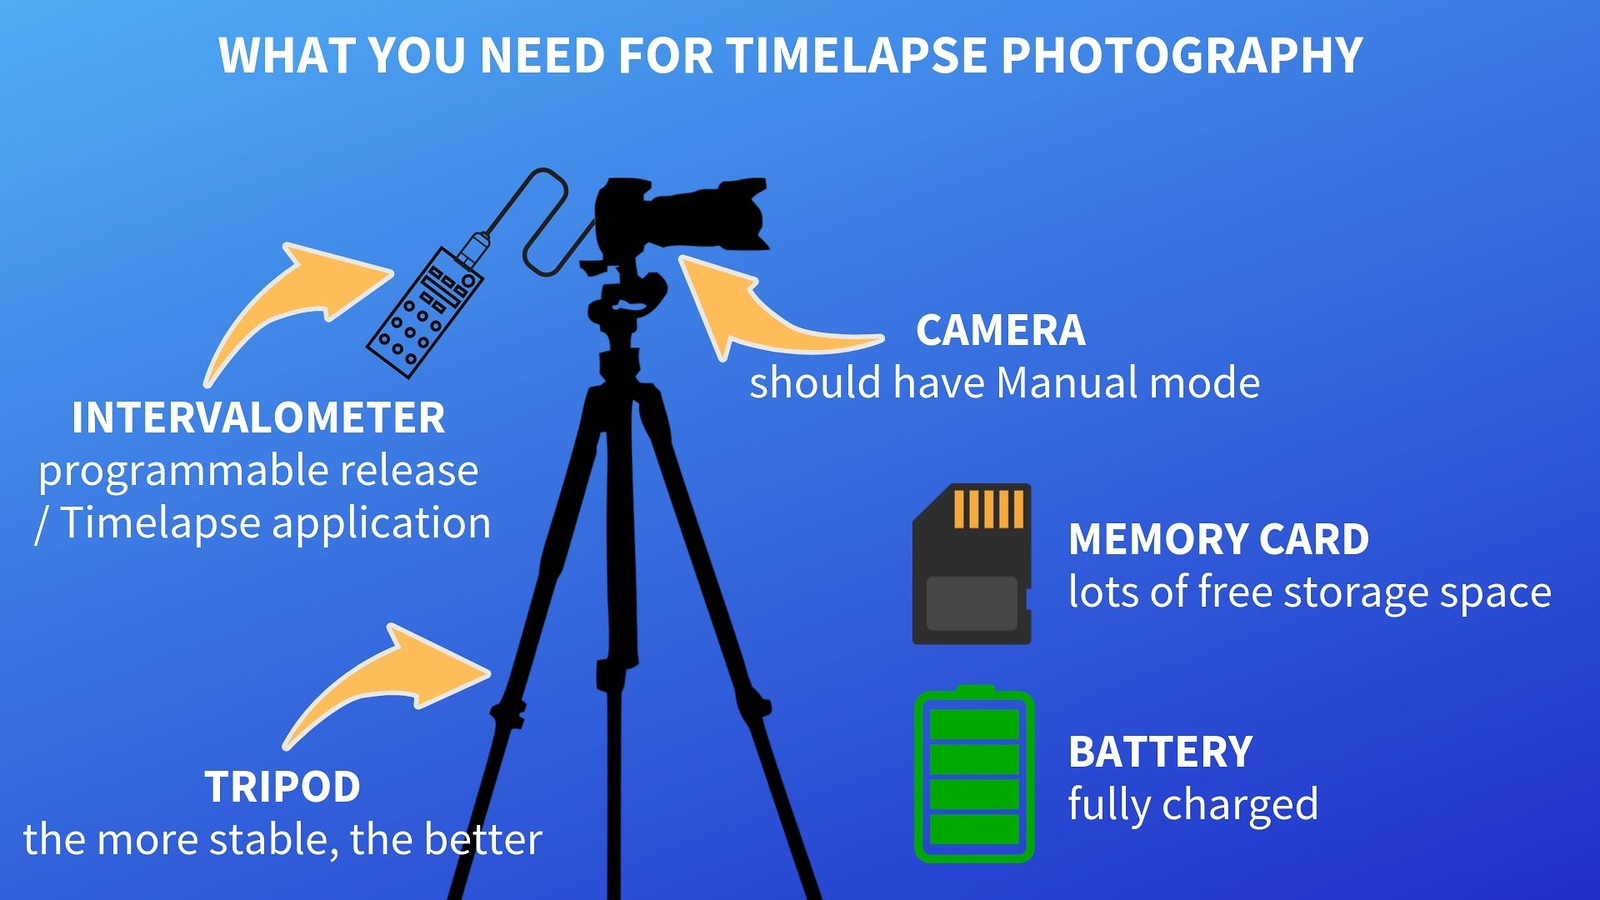 equipment you need for timelaps photography illustration